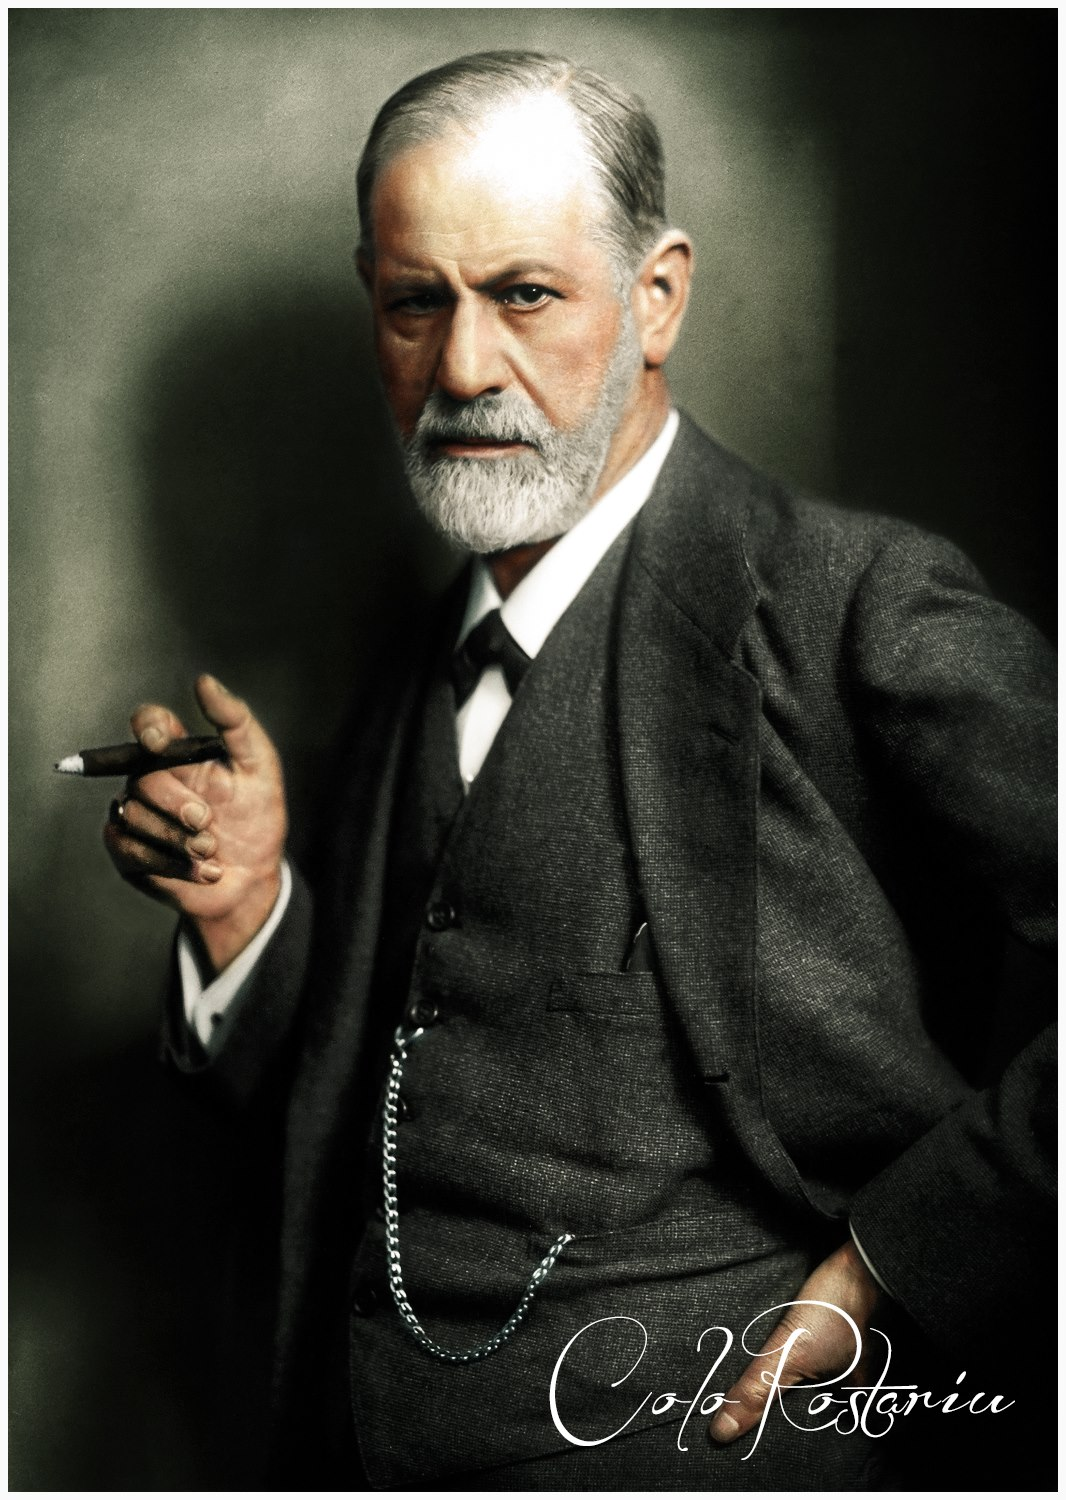 sigmund freud the father of psychoanalysis Sigmund freud, the father of psychoanalysis, was once one of cocaine's leading medical advocates.